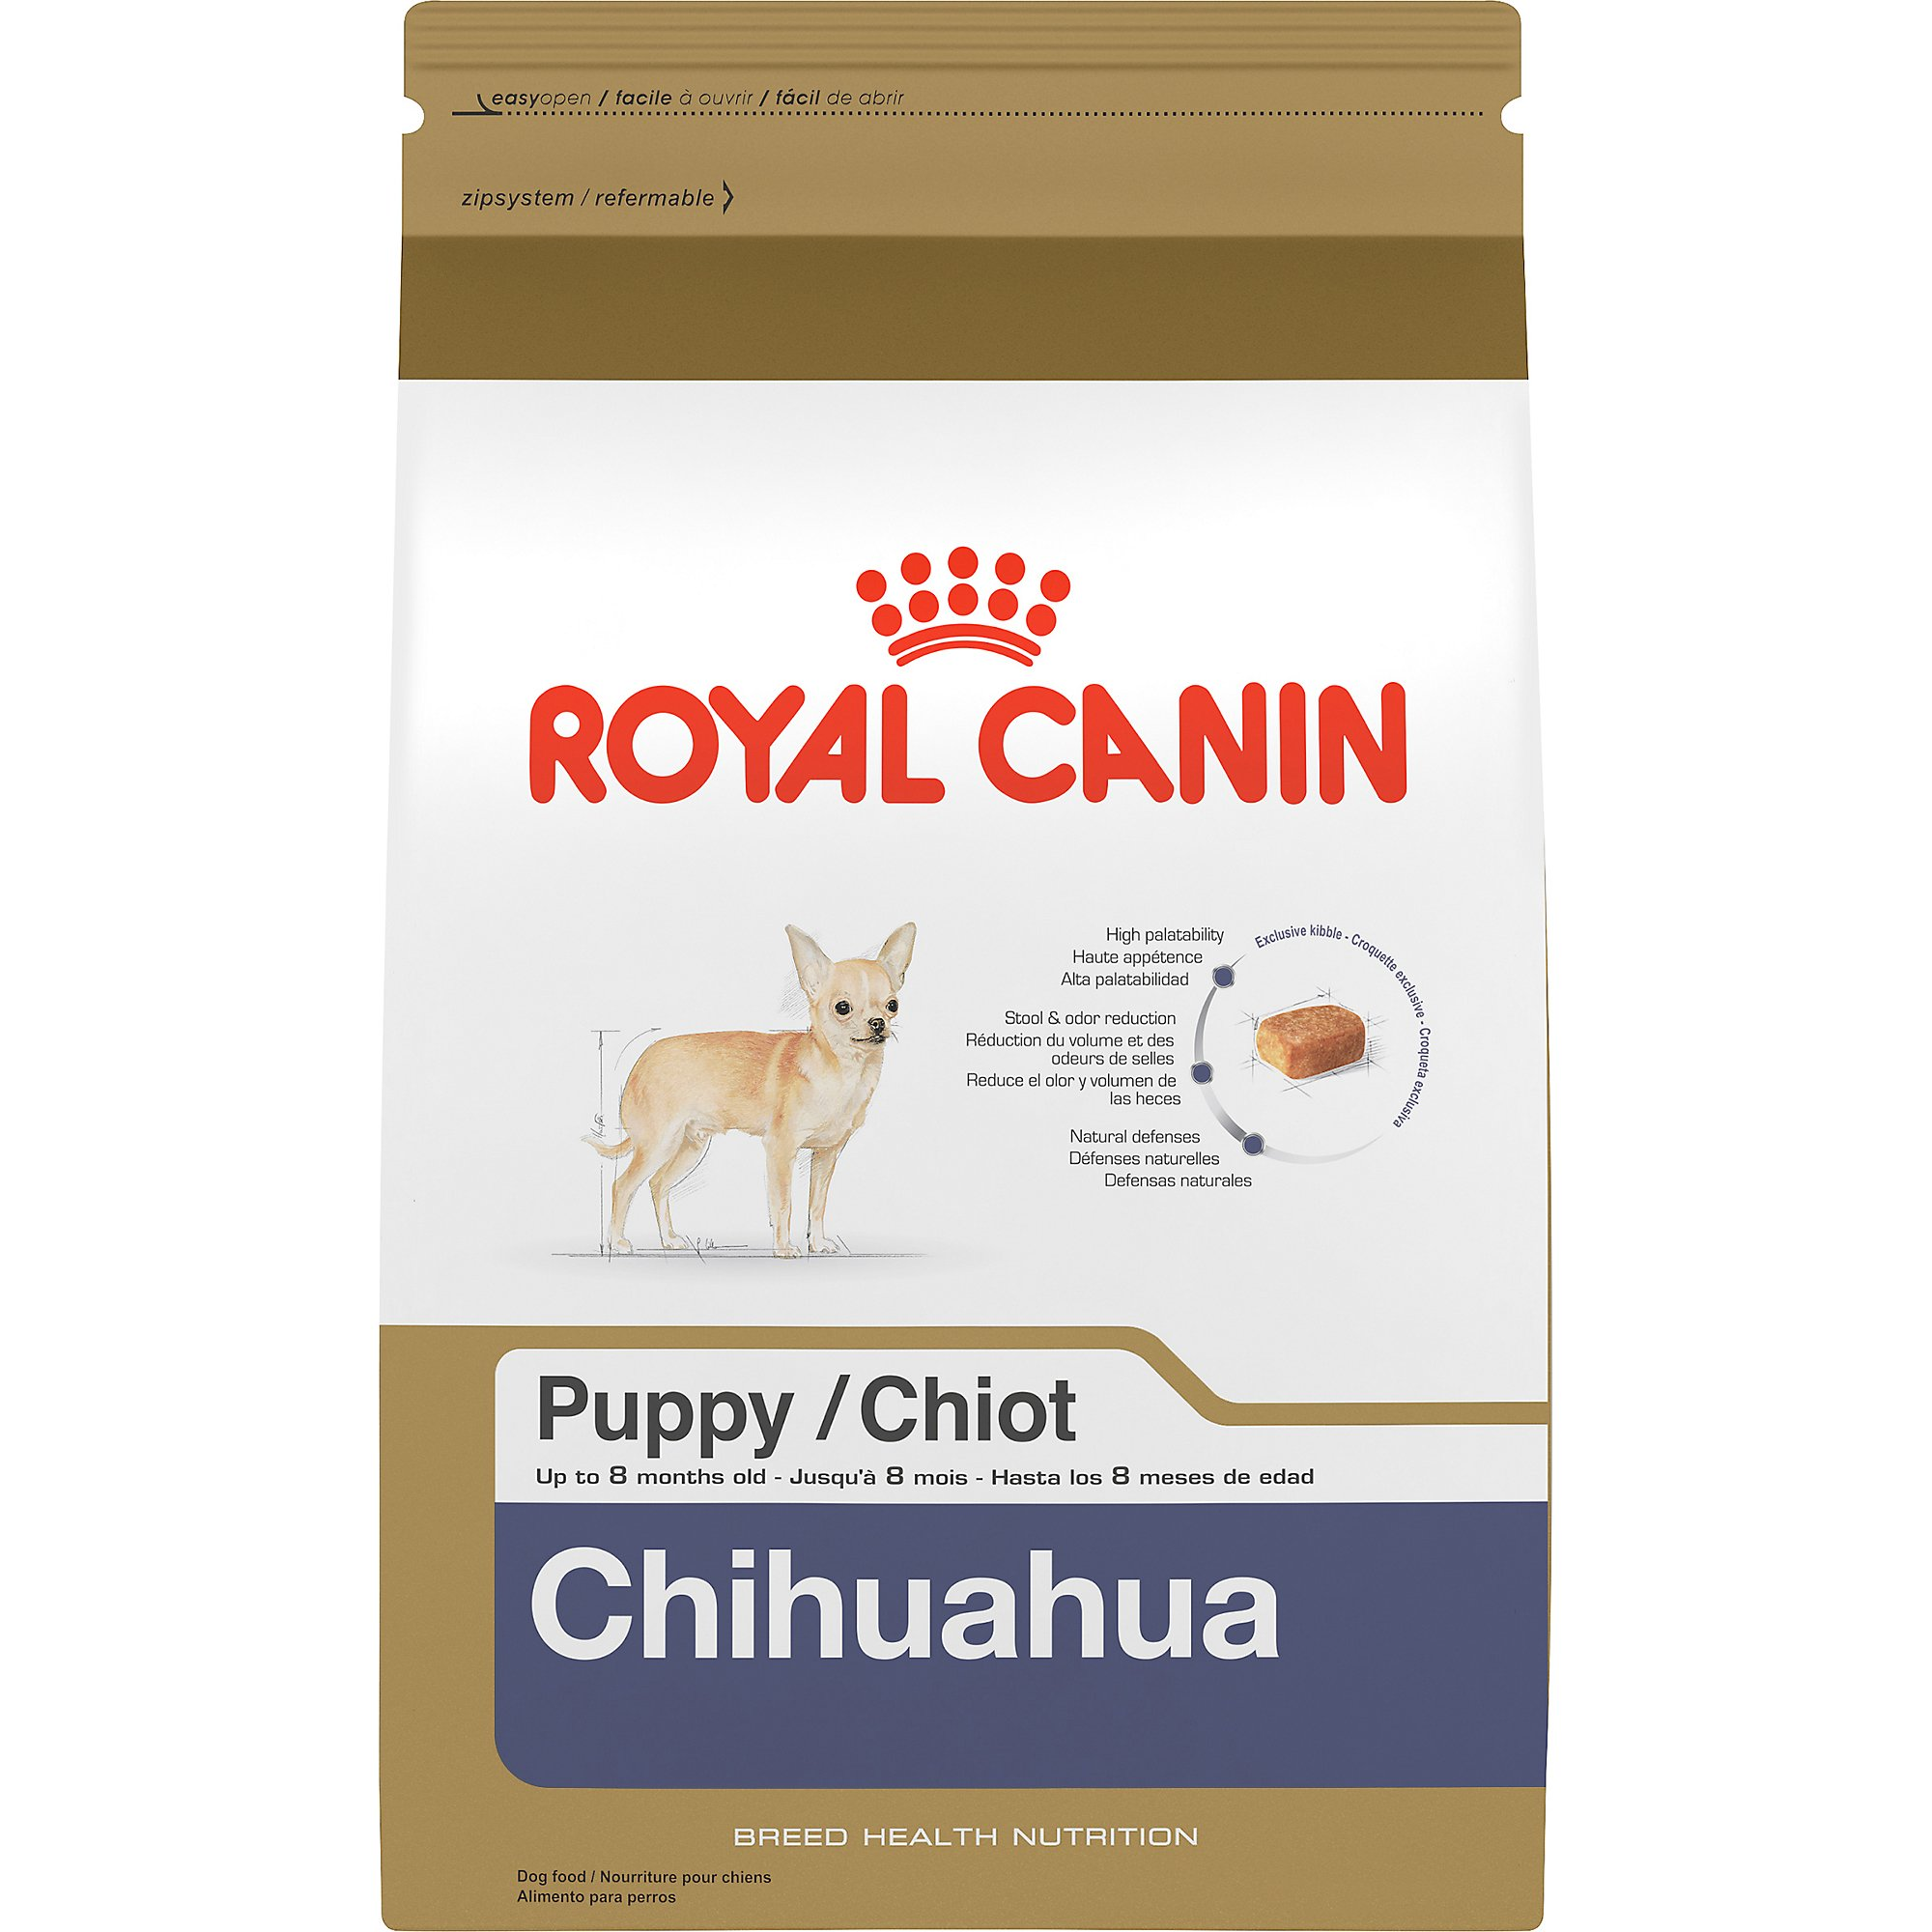 royal canin chihuahua puppy dry dog food 2 5 pound bag by royal canin bunte. Black Bedroom Furniture Sets. Home Design Ideas